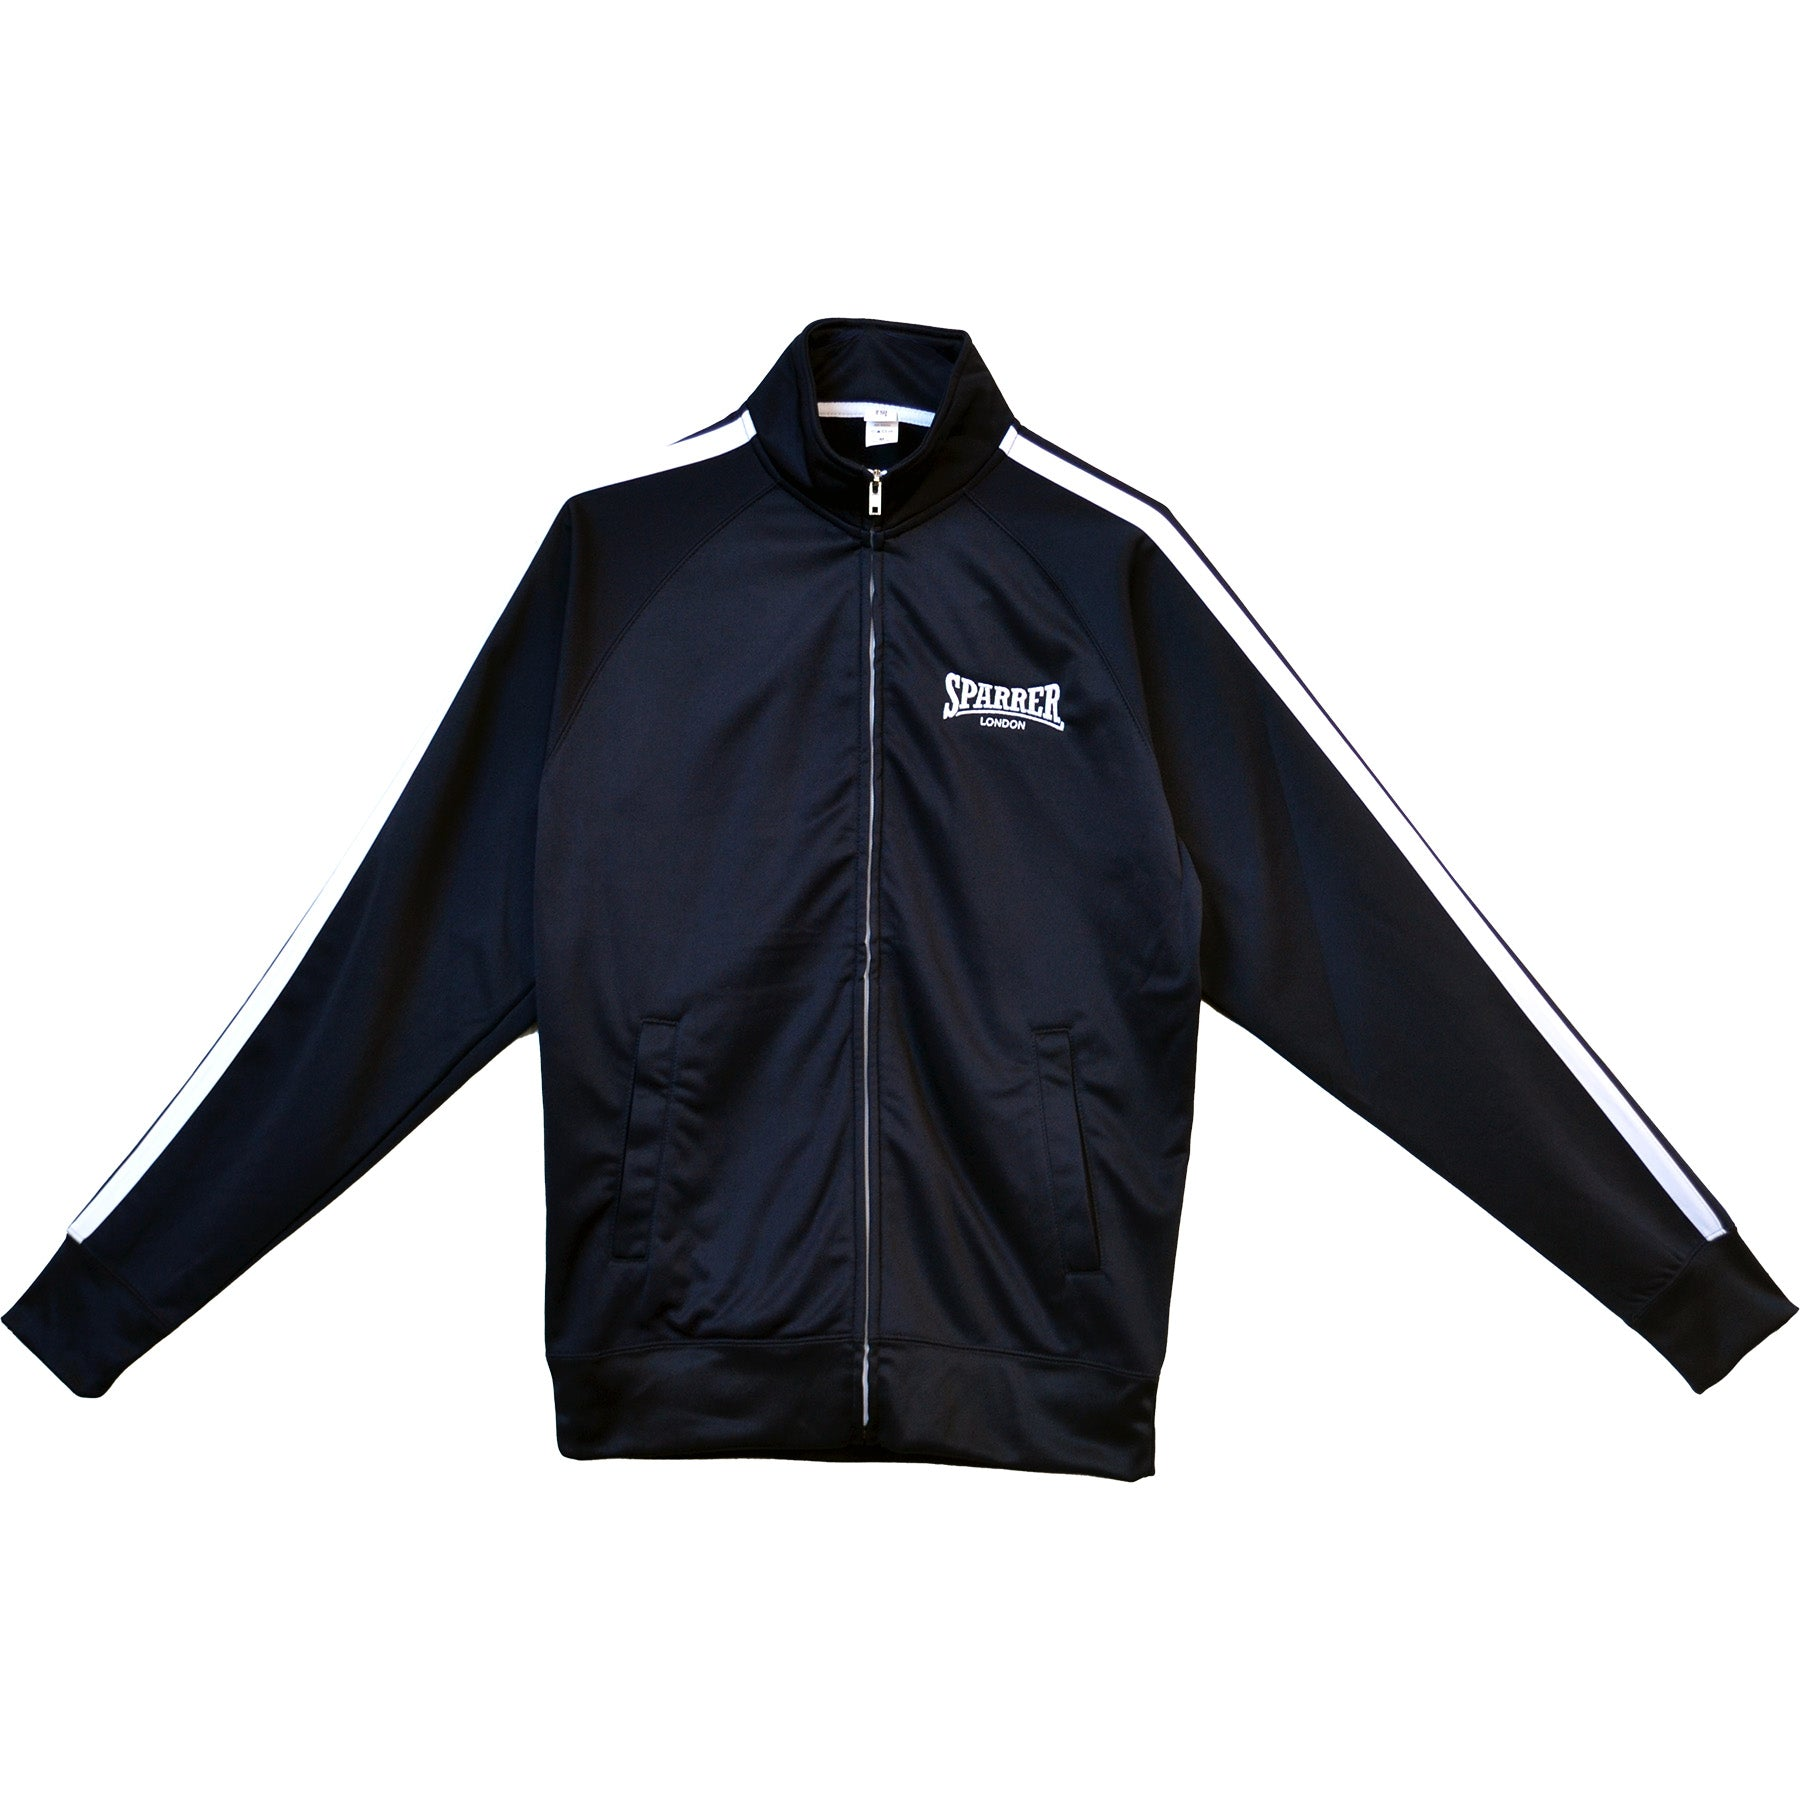 Cock Sparrer - Sparrer London - Track Jacket - Navy